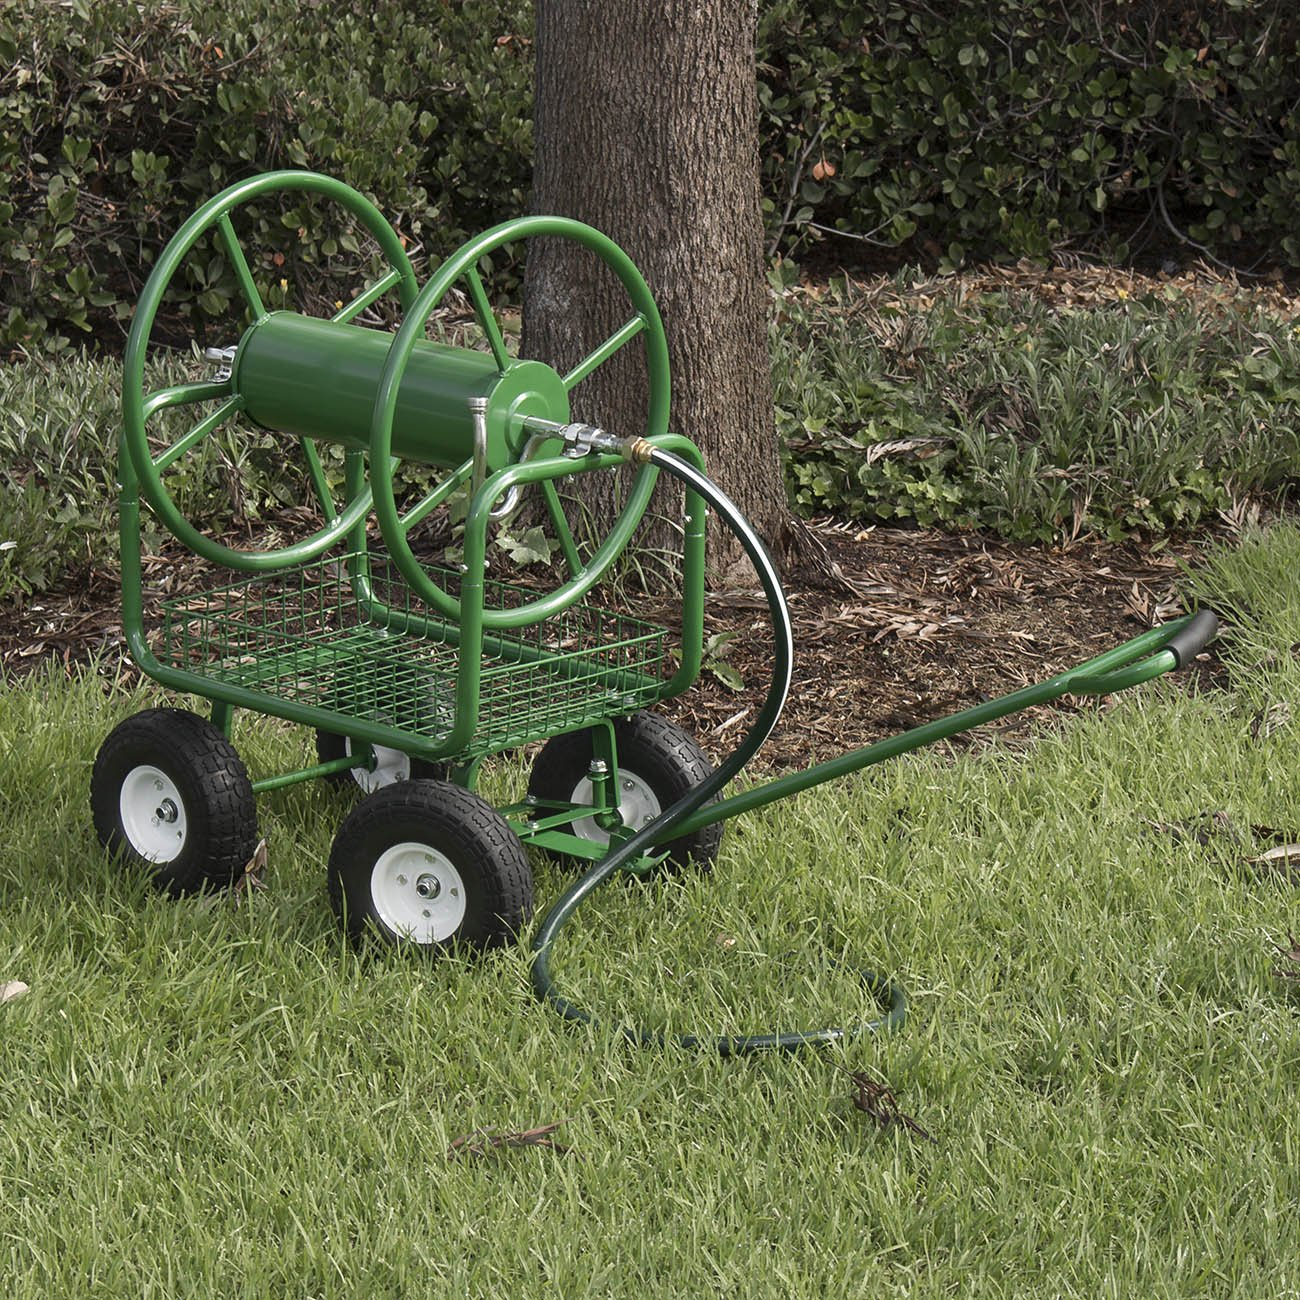 ARKSEN Water Hose Reel Cart 400 ft Capacity Garden Basket with Easy Turn Handle